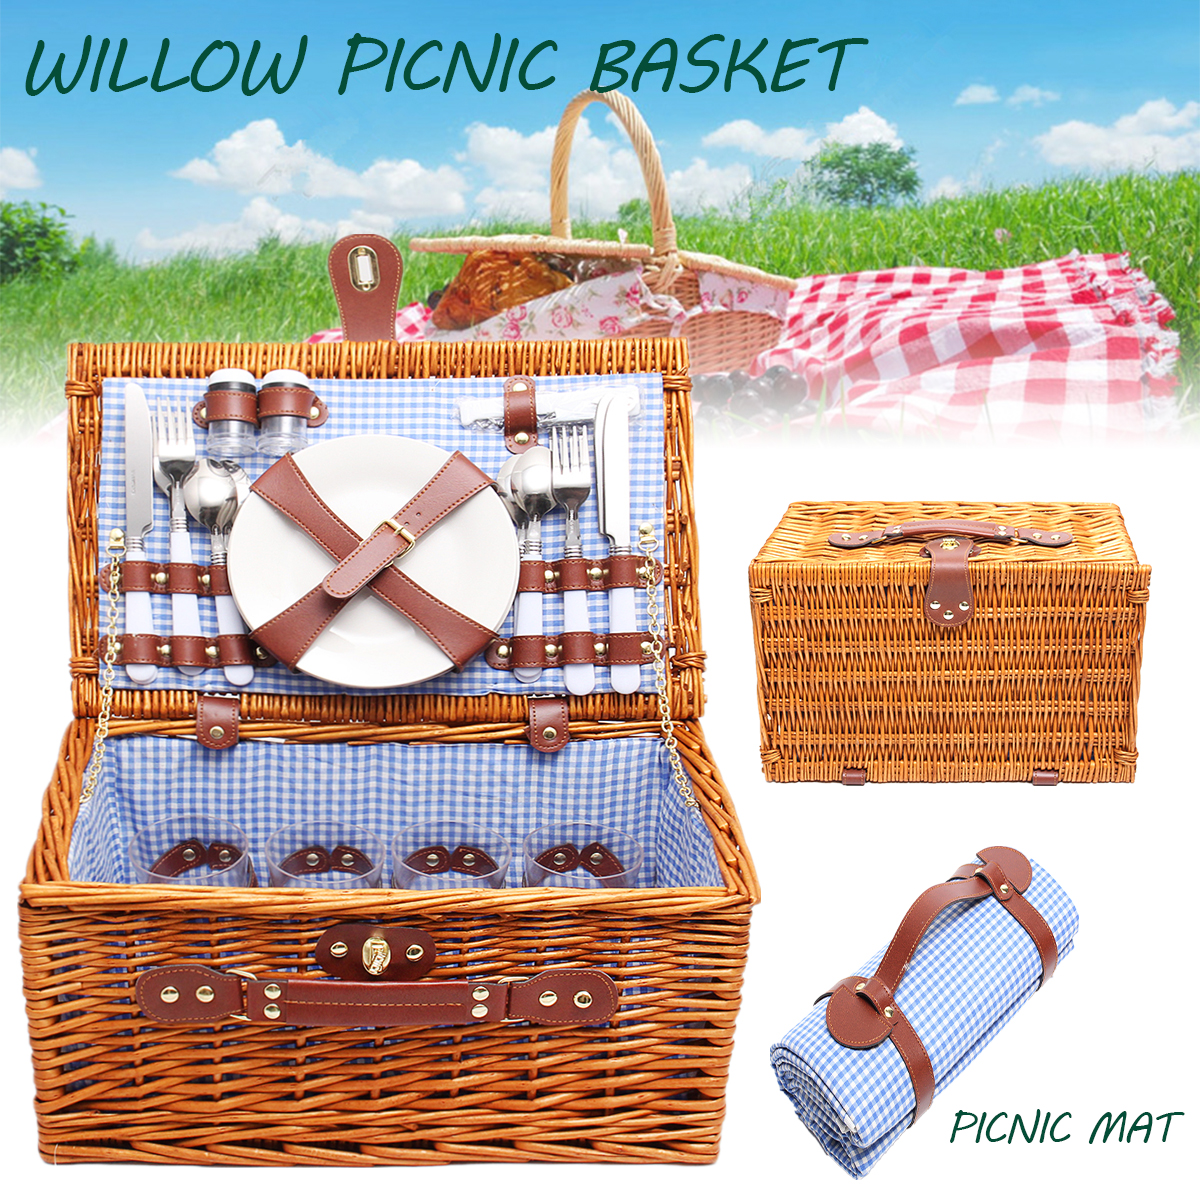 4 Person Wicker Picnic Basket W/ Cutlery, Plates, Glasses, Tableware & Blanket